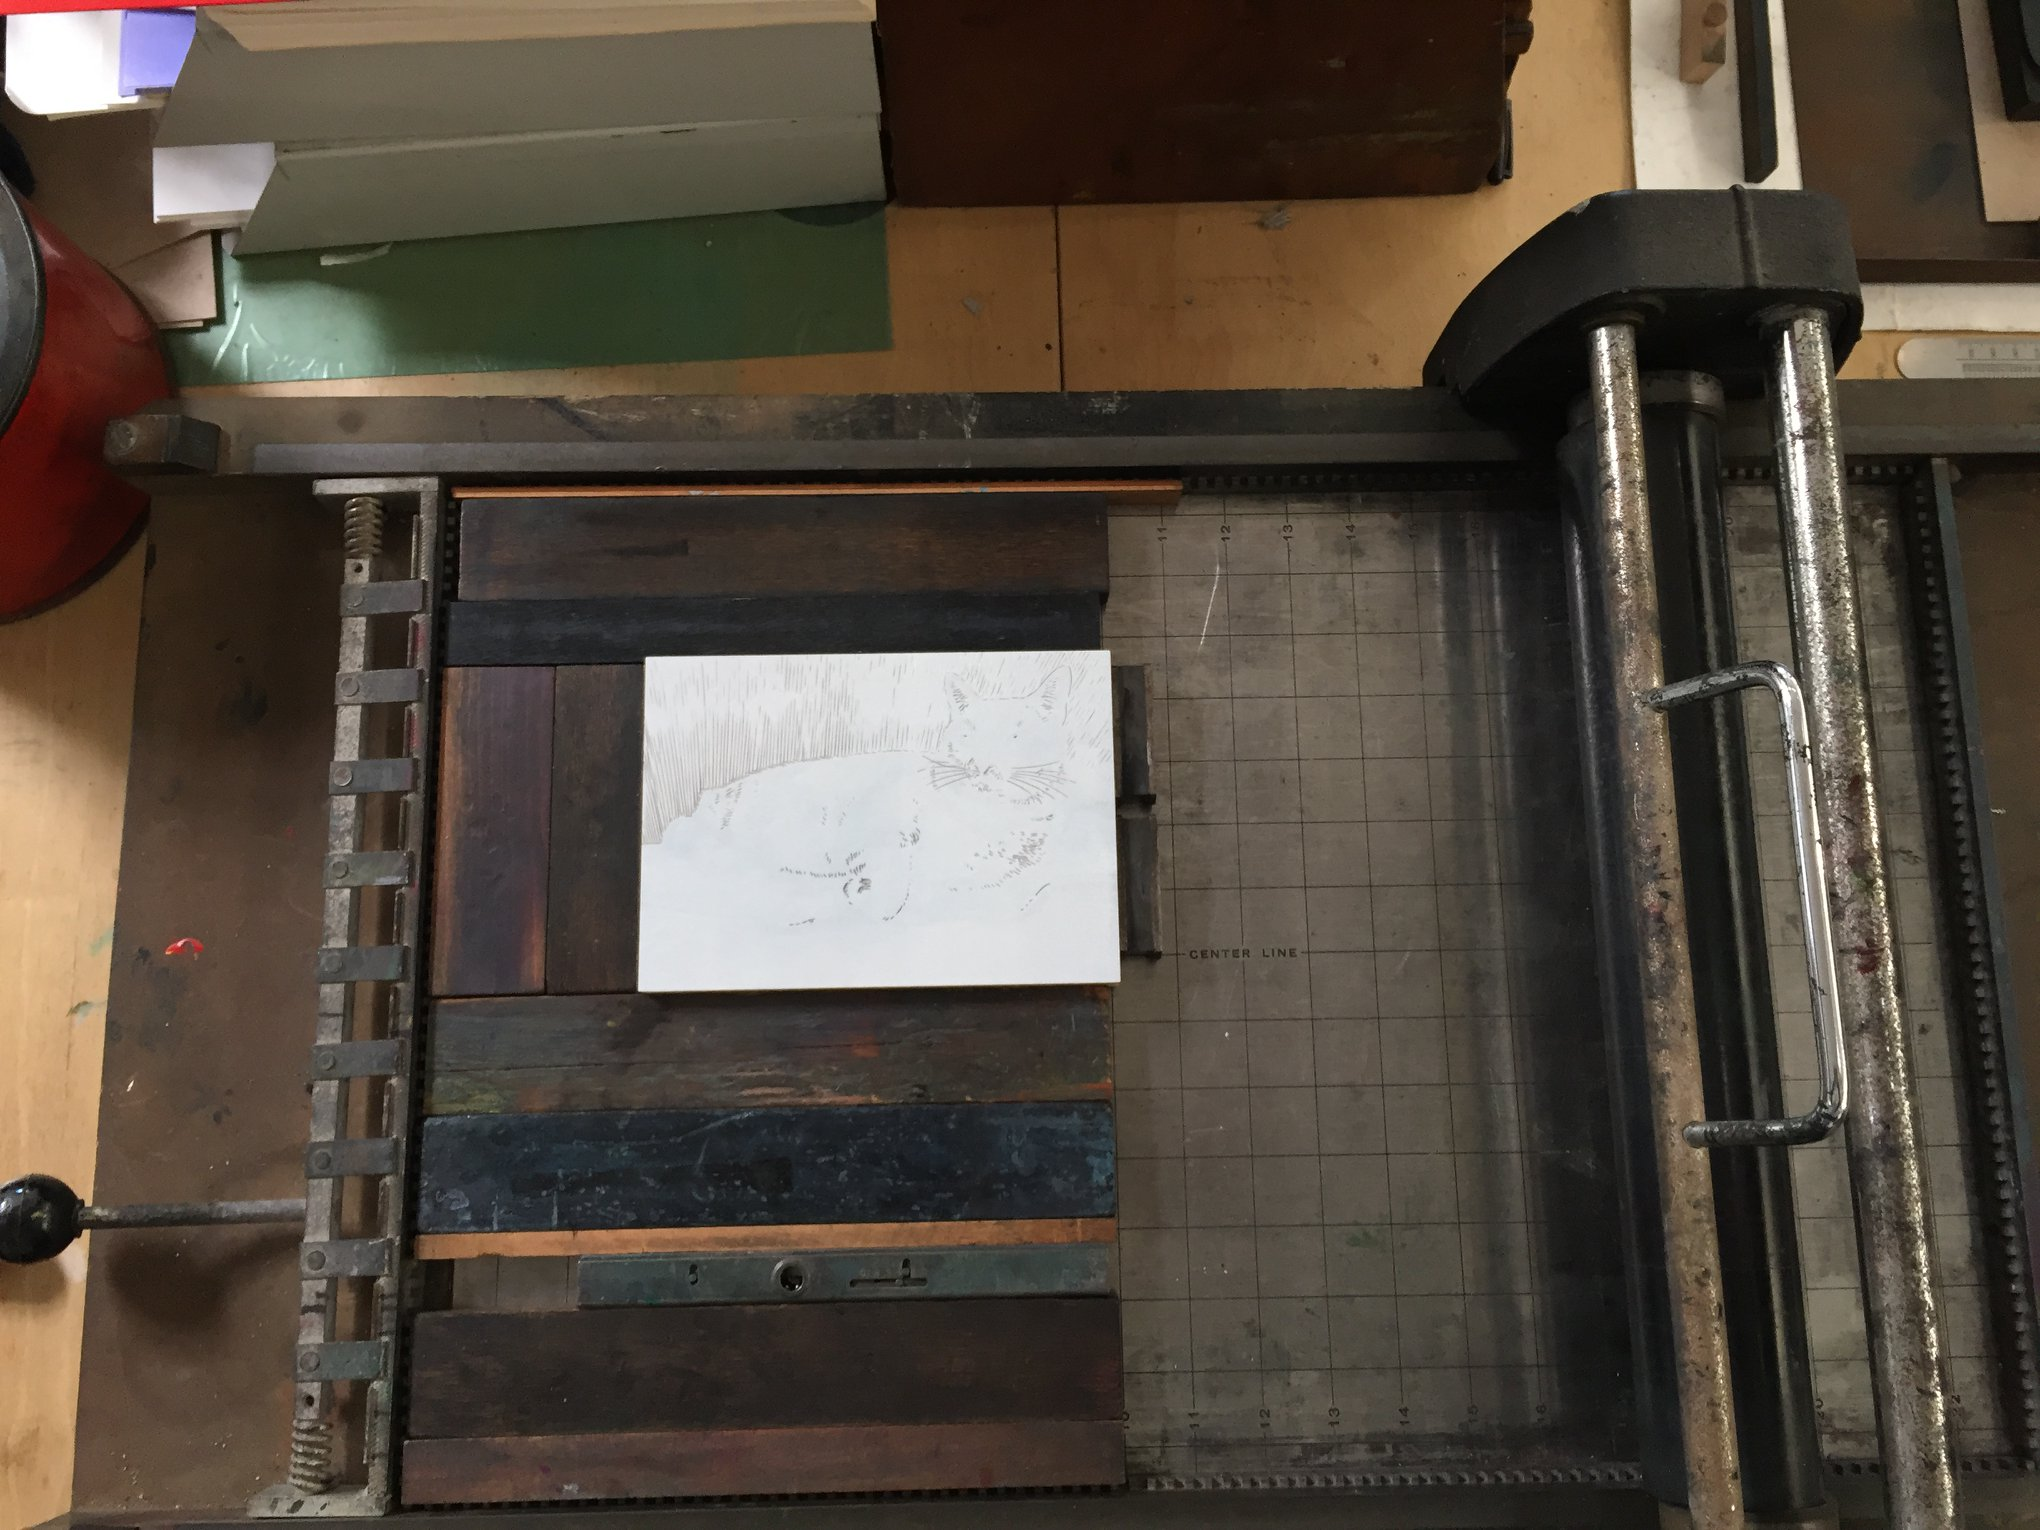 Here is the block locked up in the press that I am using for the print. I am using a proofing press that we have at the Athenaeum's Print Studio.